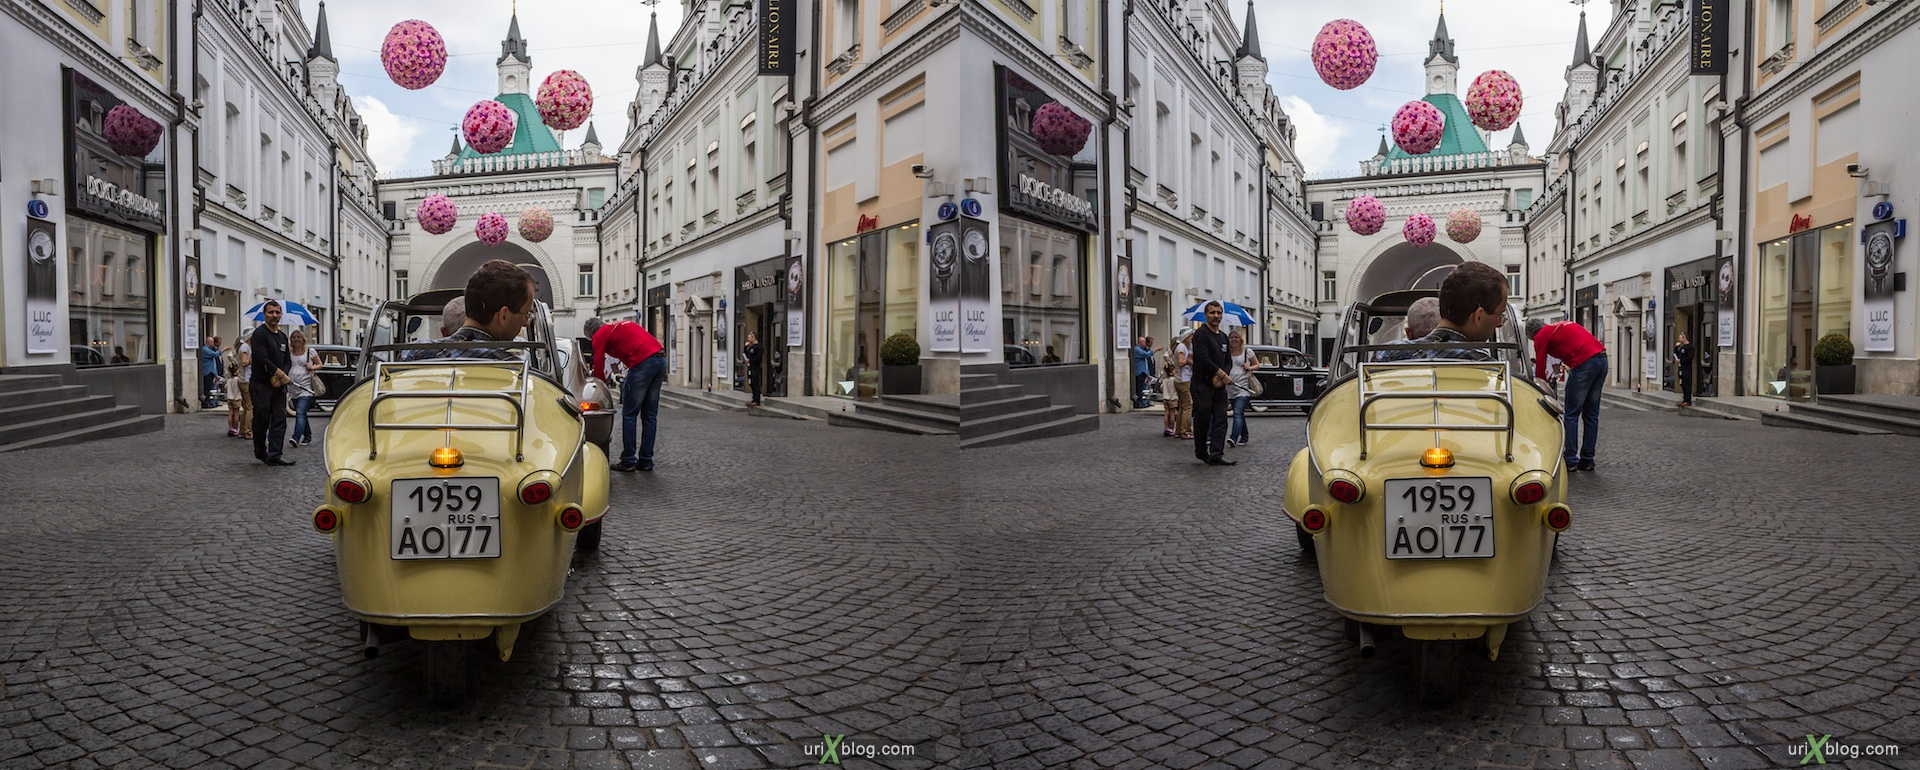 2013, old, automobile, rally, Moscow, Russia, 3D, stereo pair, cross-eyed, crossview, cross view stereo pair, stereoscopic